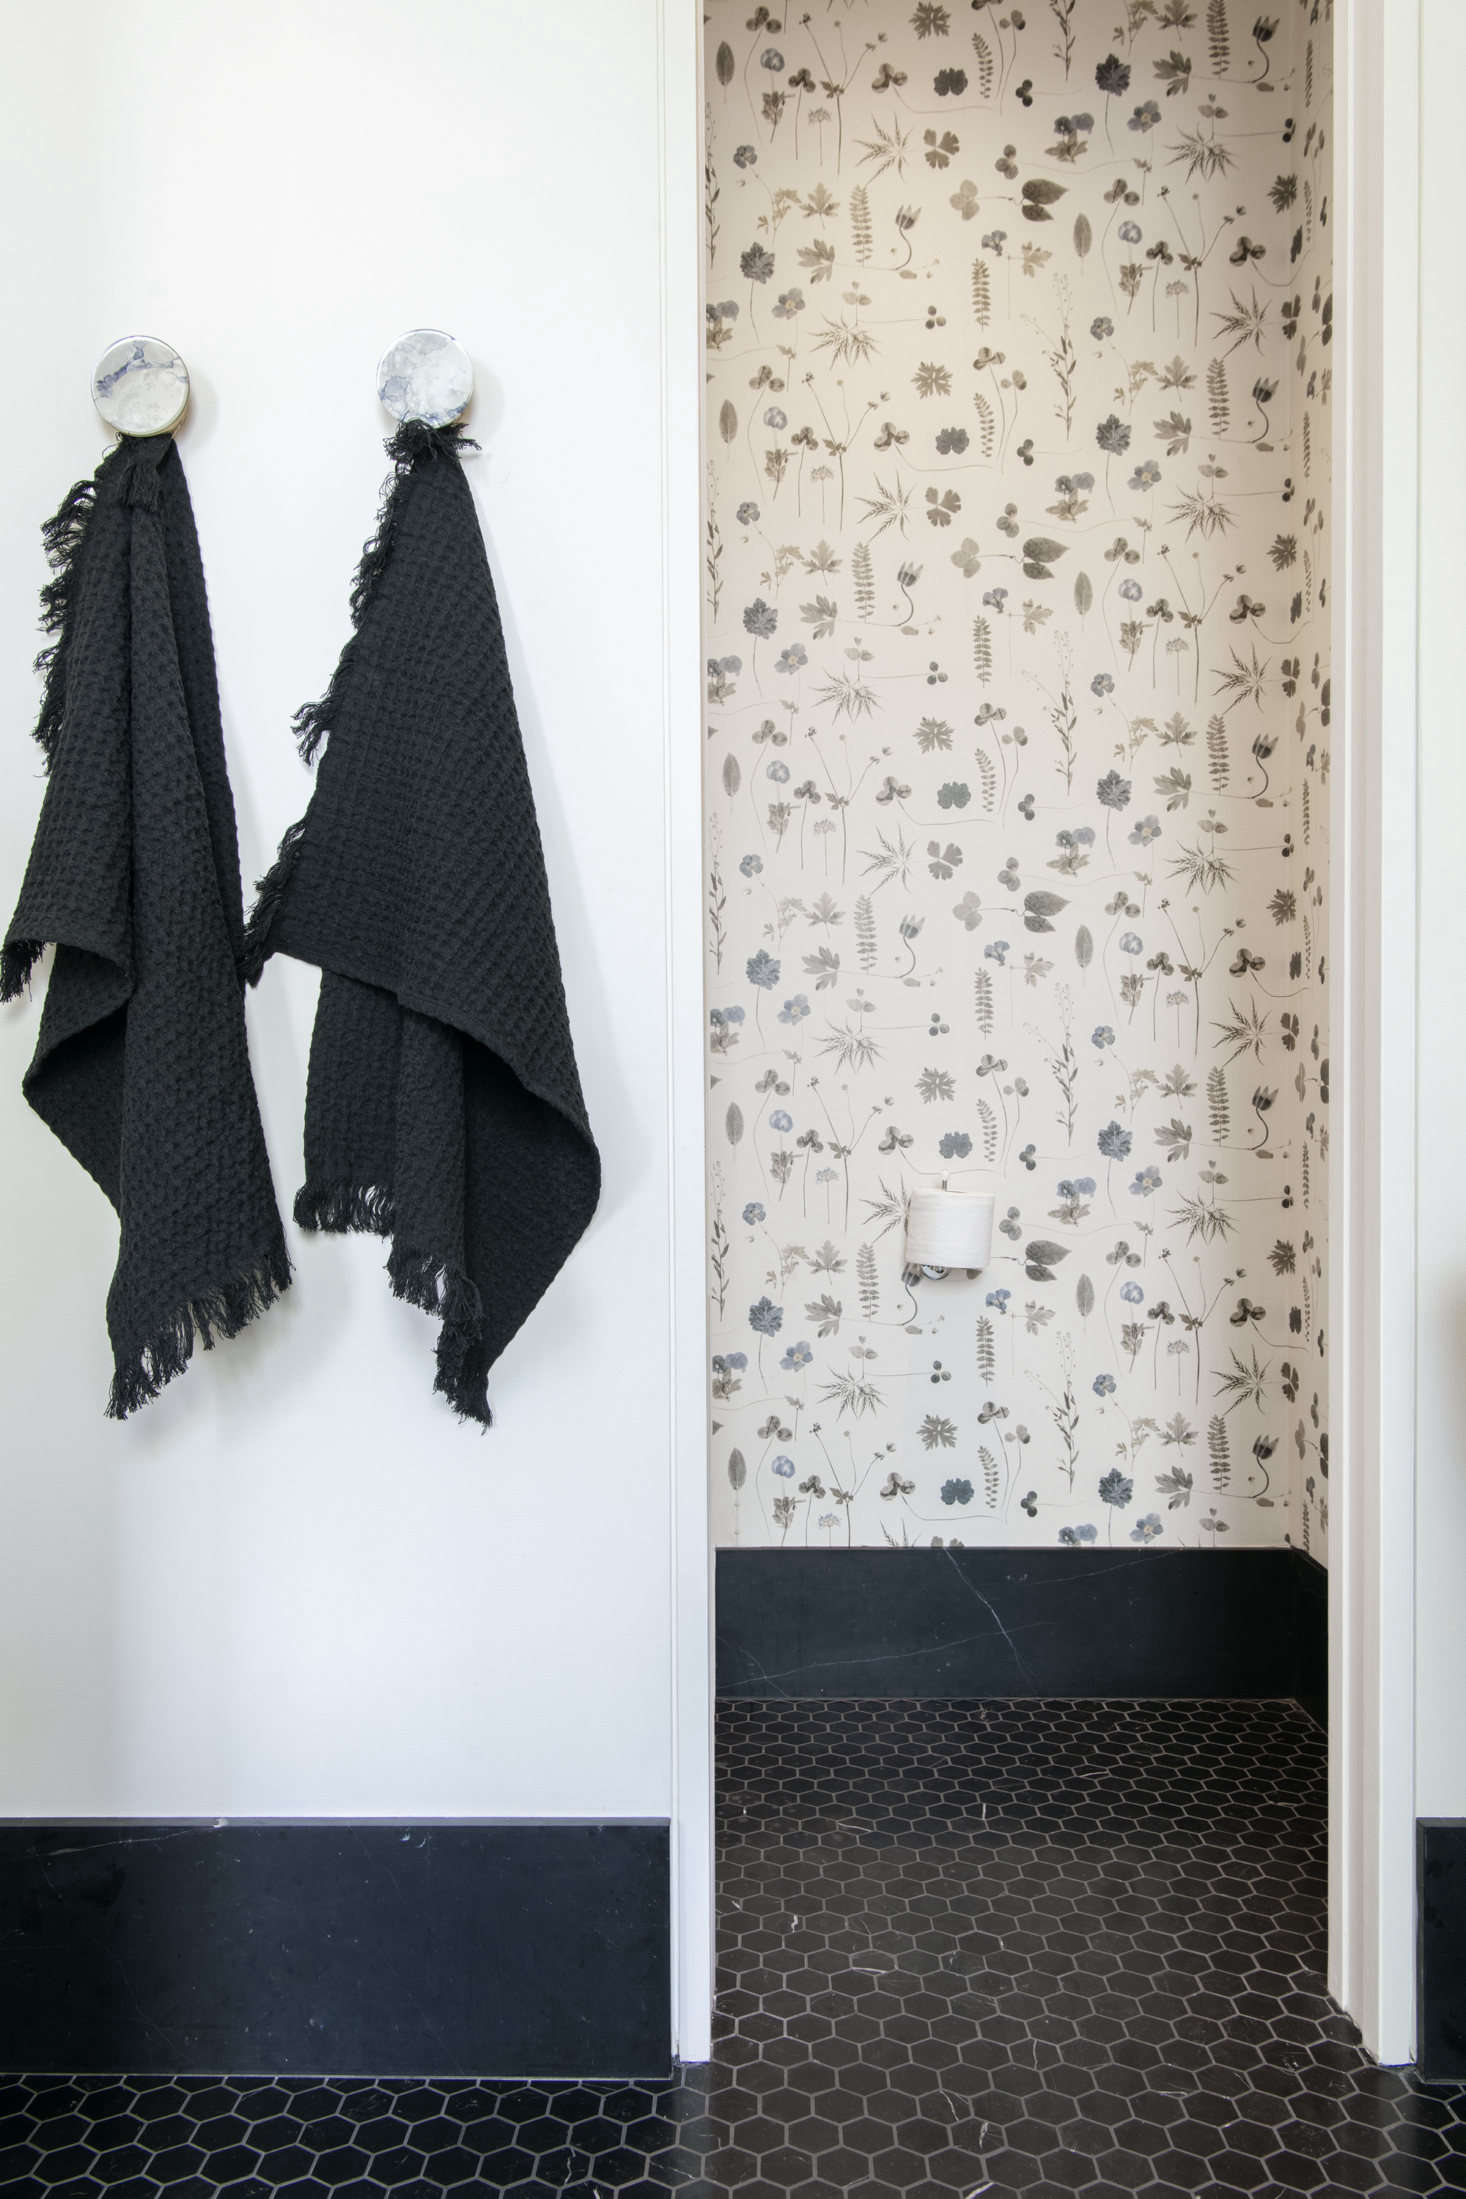 Soft waffle towels and botanical wallpaper add a soft, natural touch.